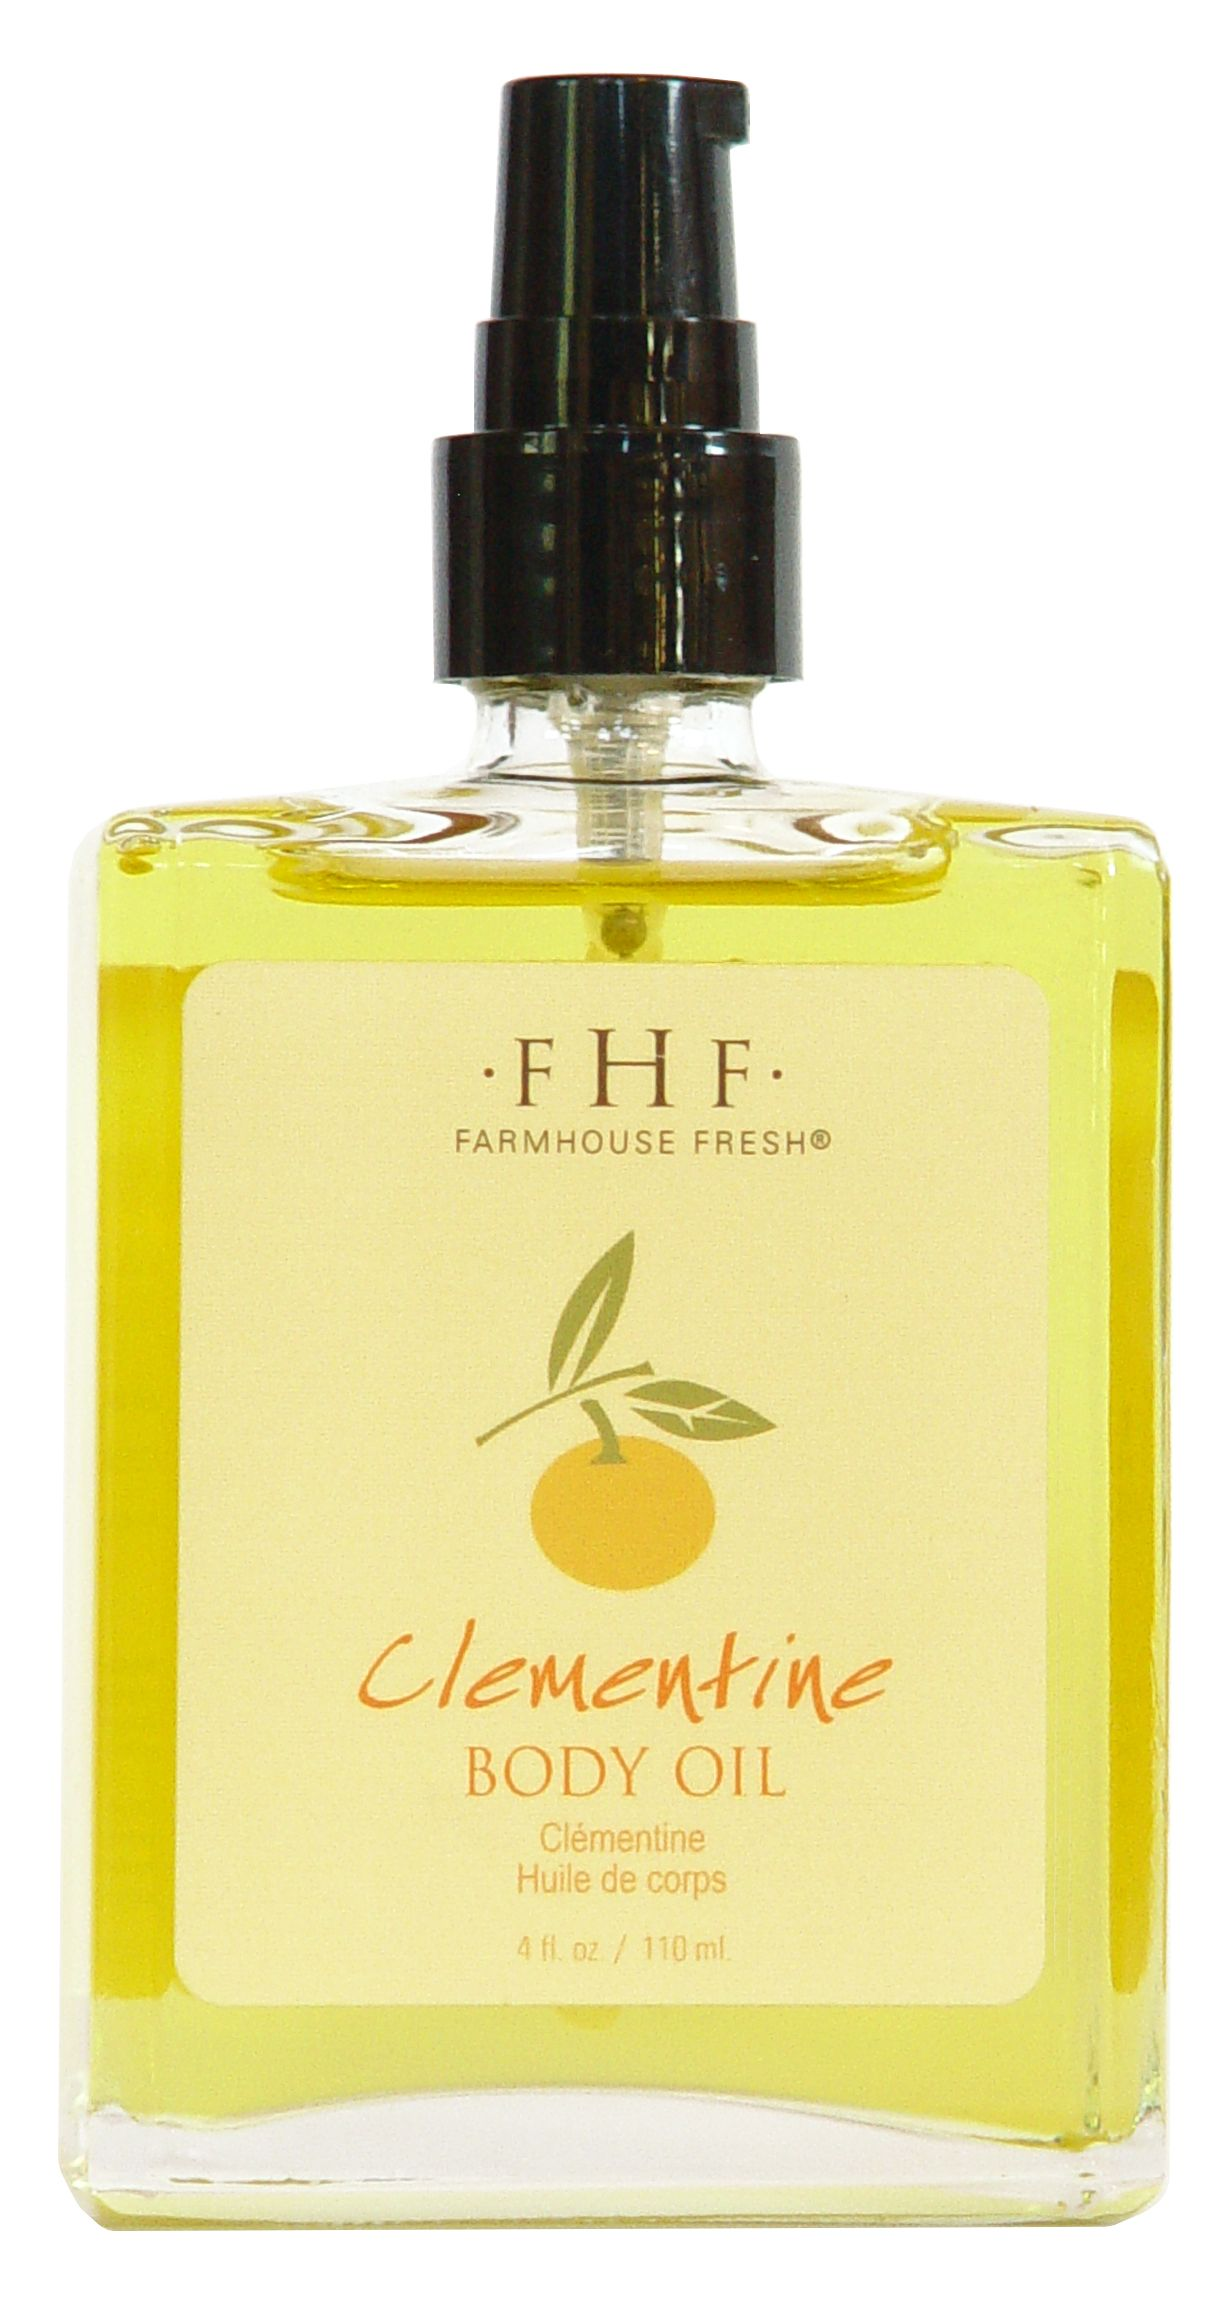 Clementine Body Oil made with antioxidant and vitaminrich